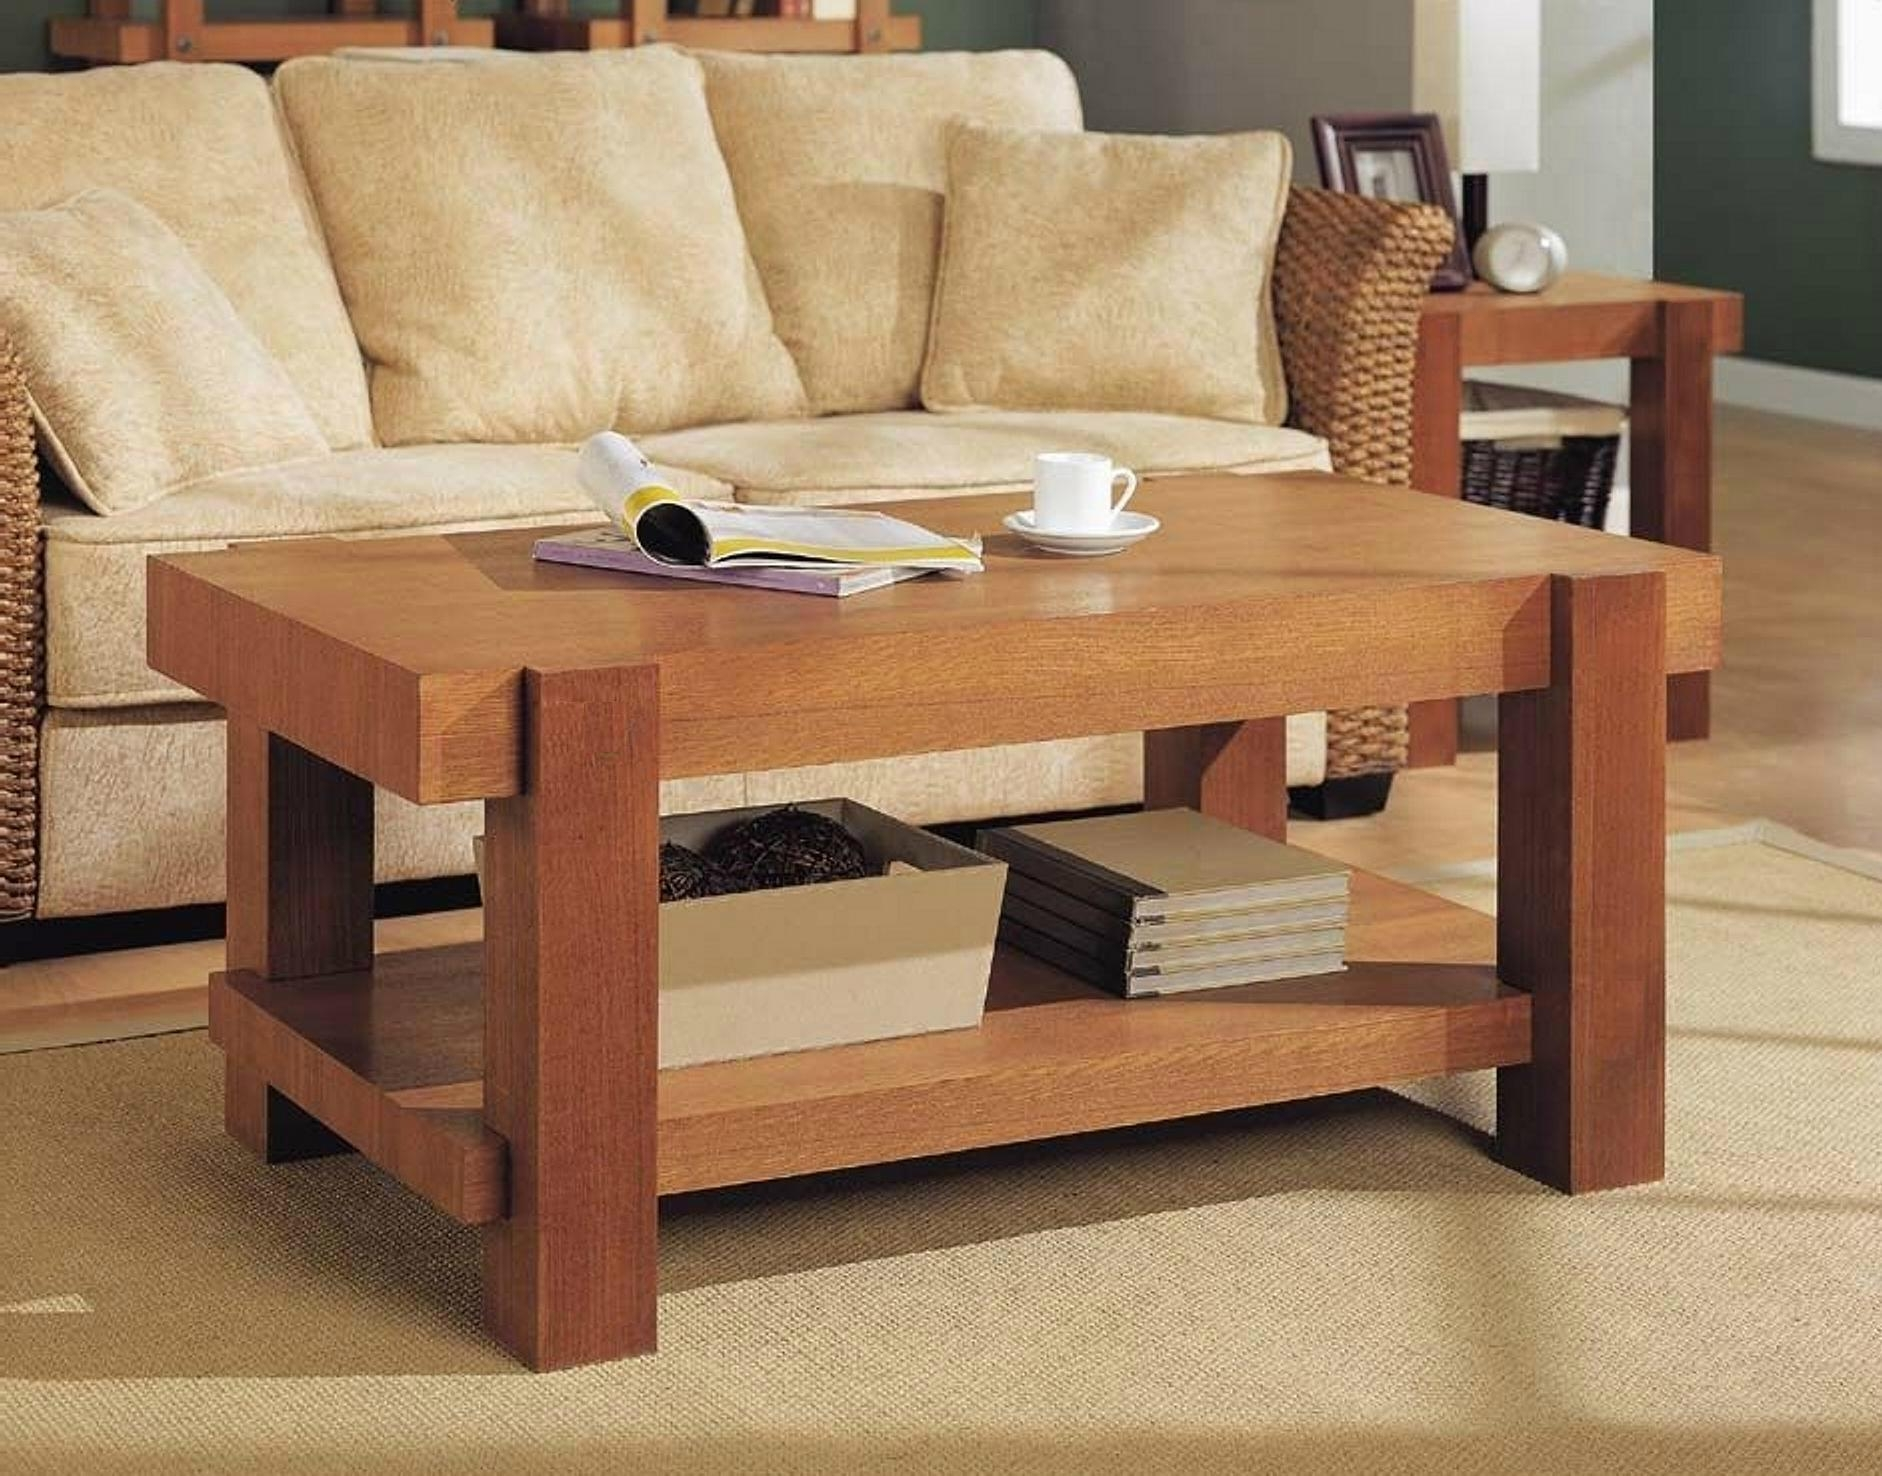 2PCS Wooden Living Room Natural Oak Block Wood Coffee Table WD